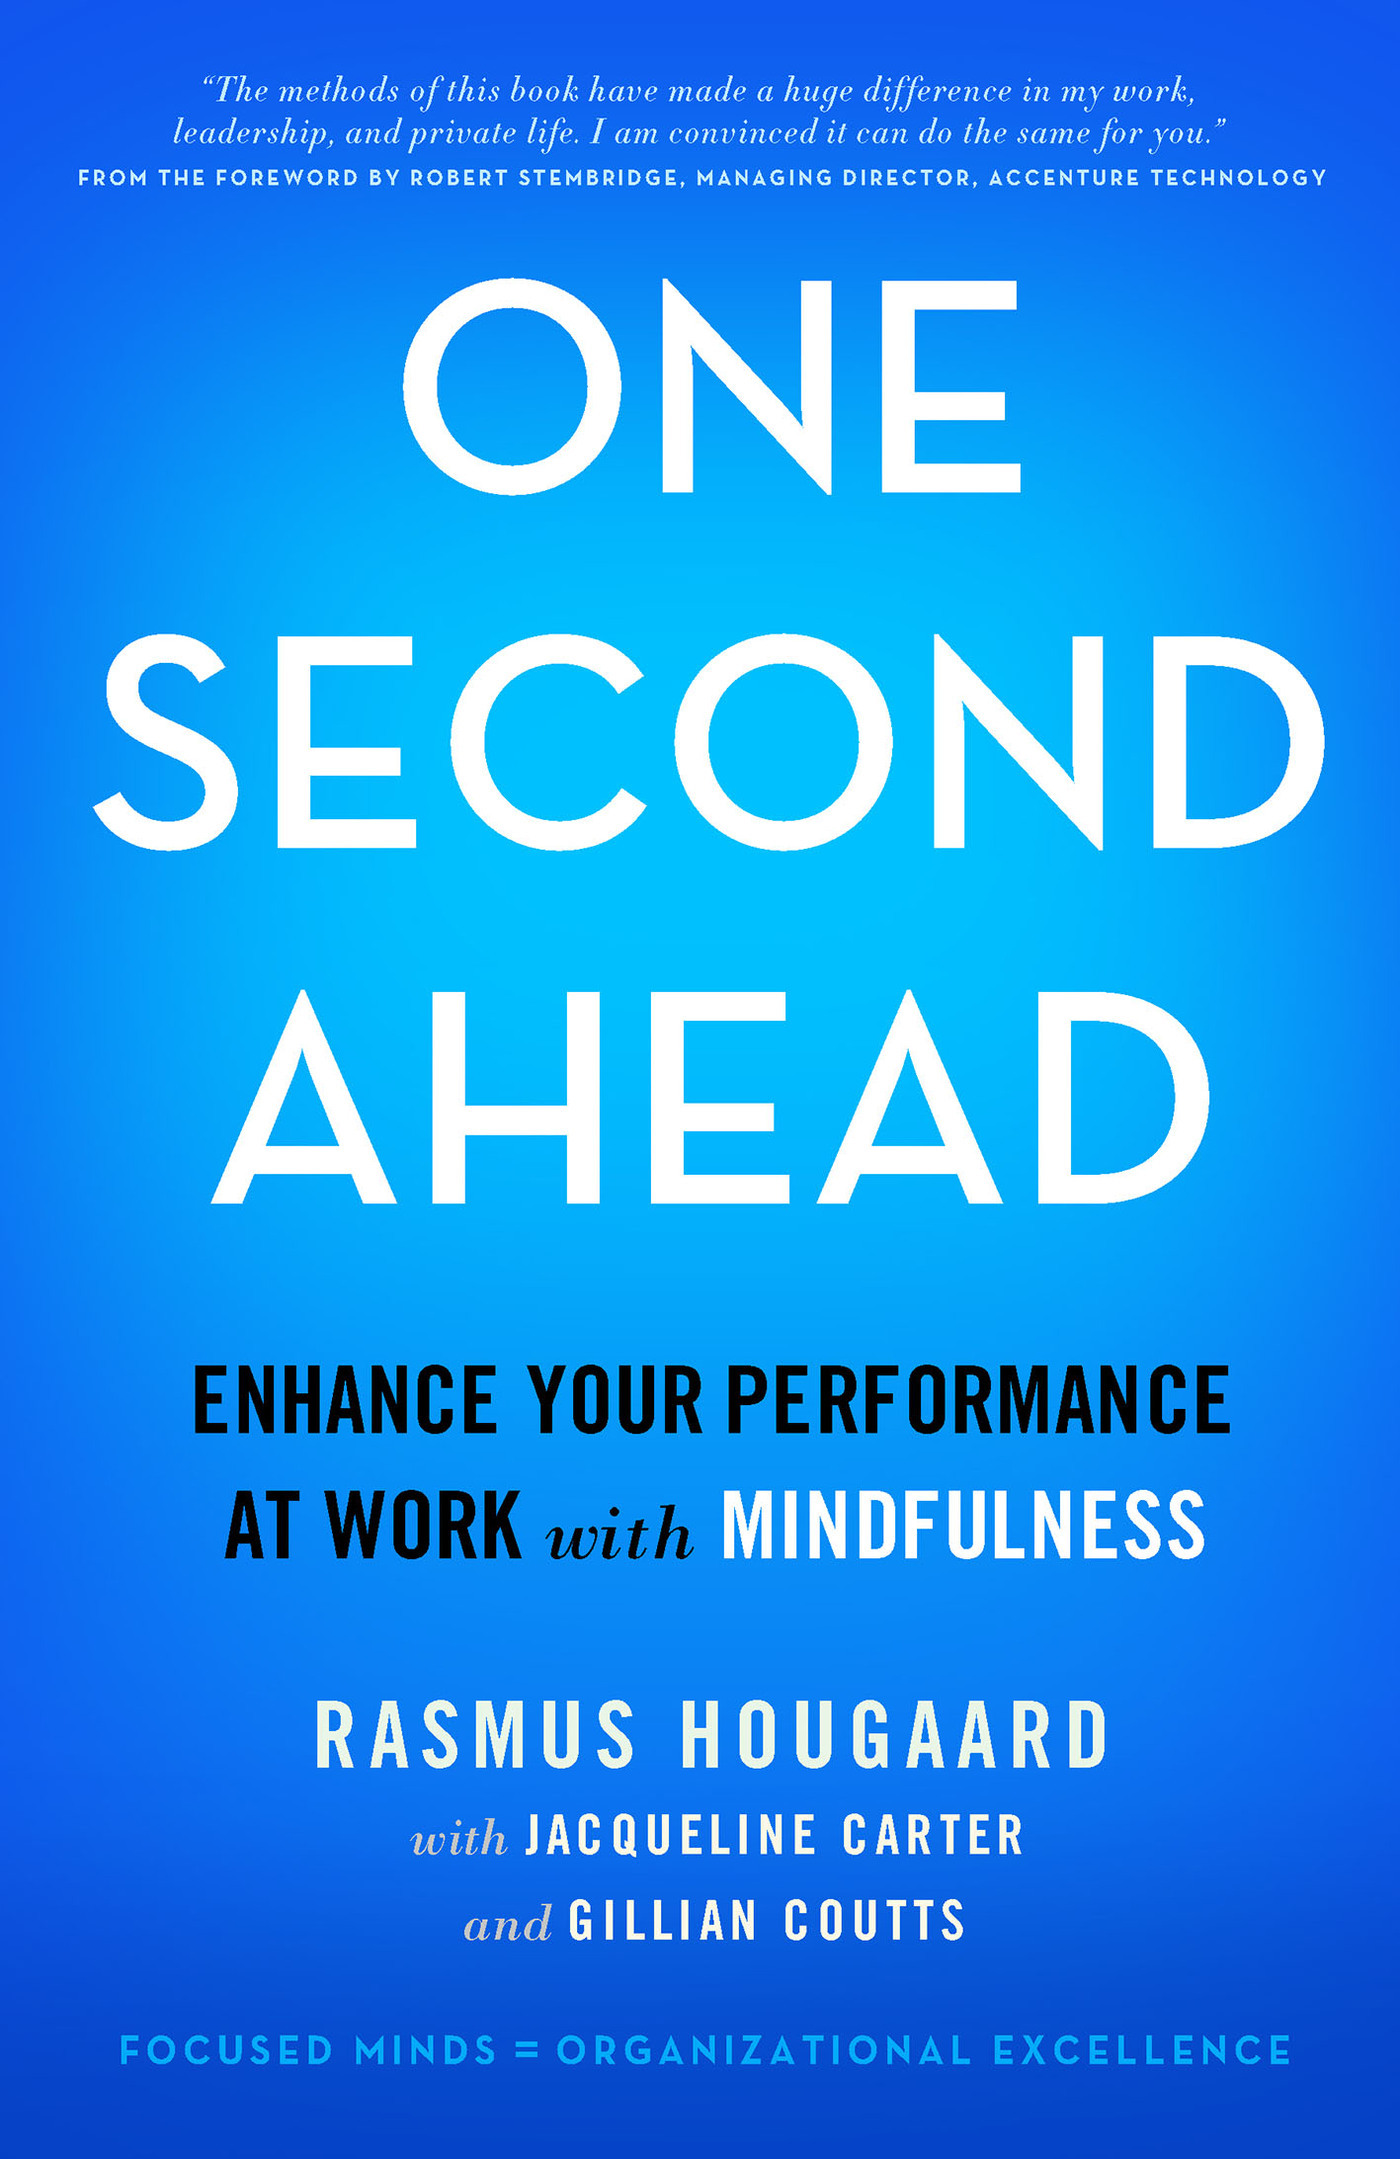 One-Second-Ahead-Enhance-Your-Performance-at-Work-with-Mindfulness